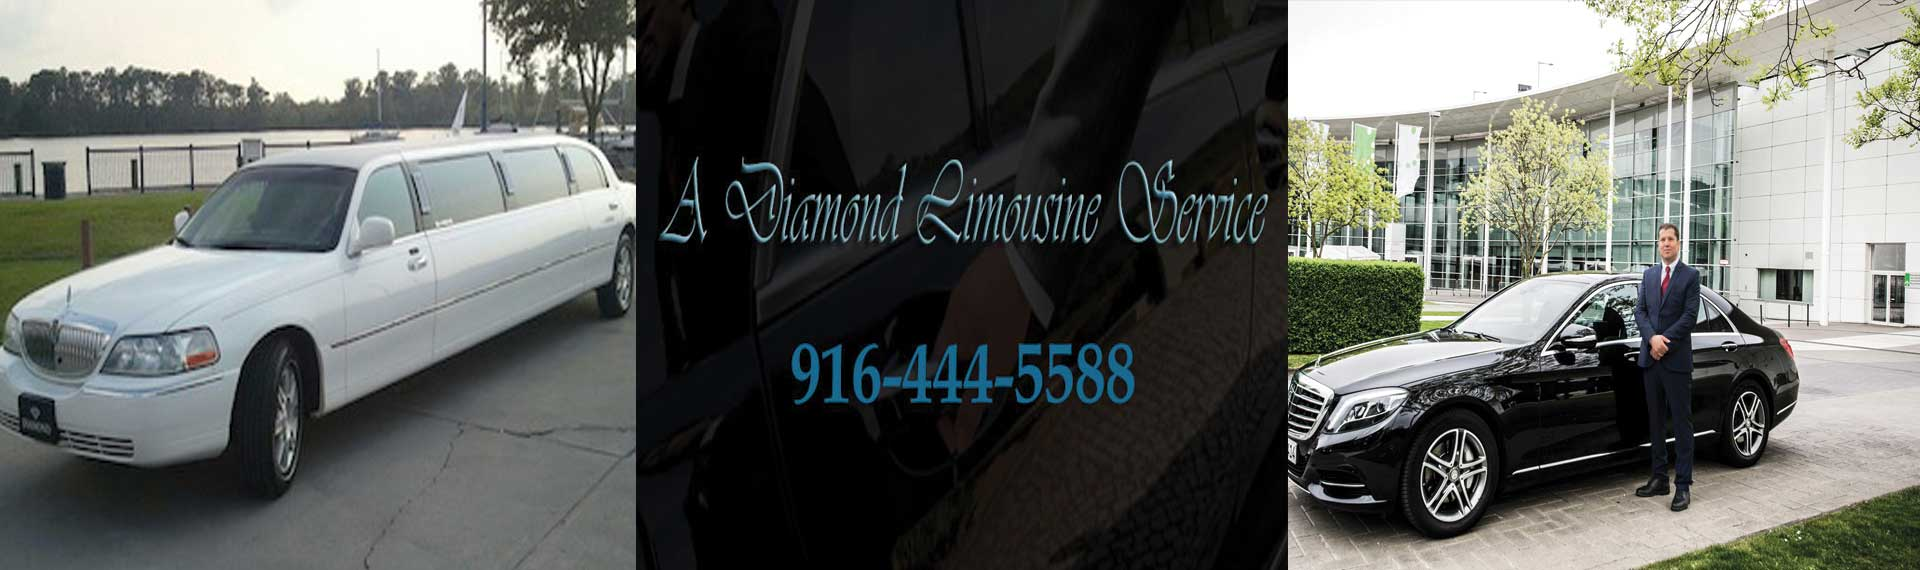 Luxury Limousine Services Rocklin CA